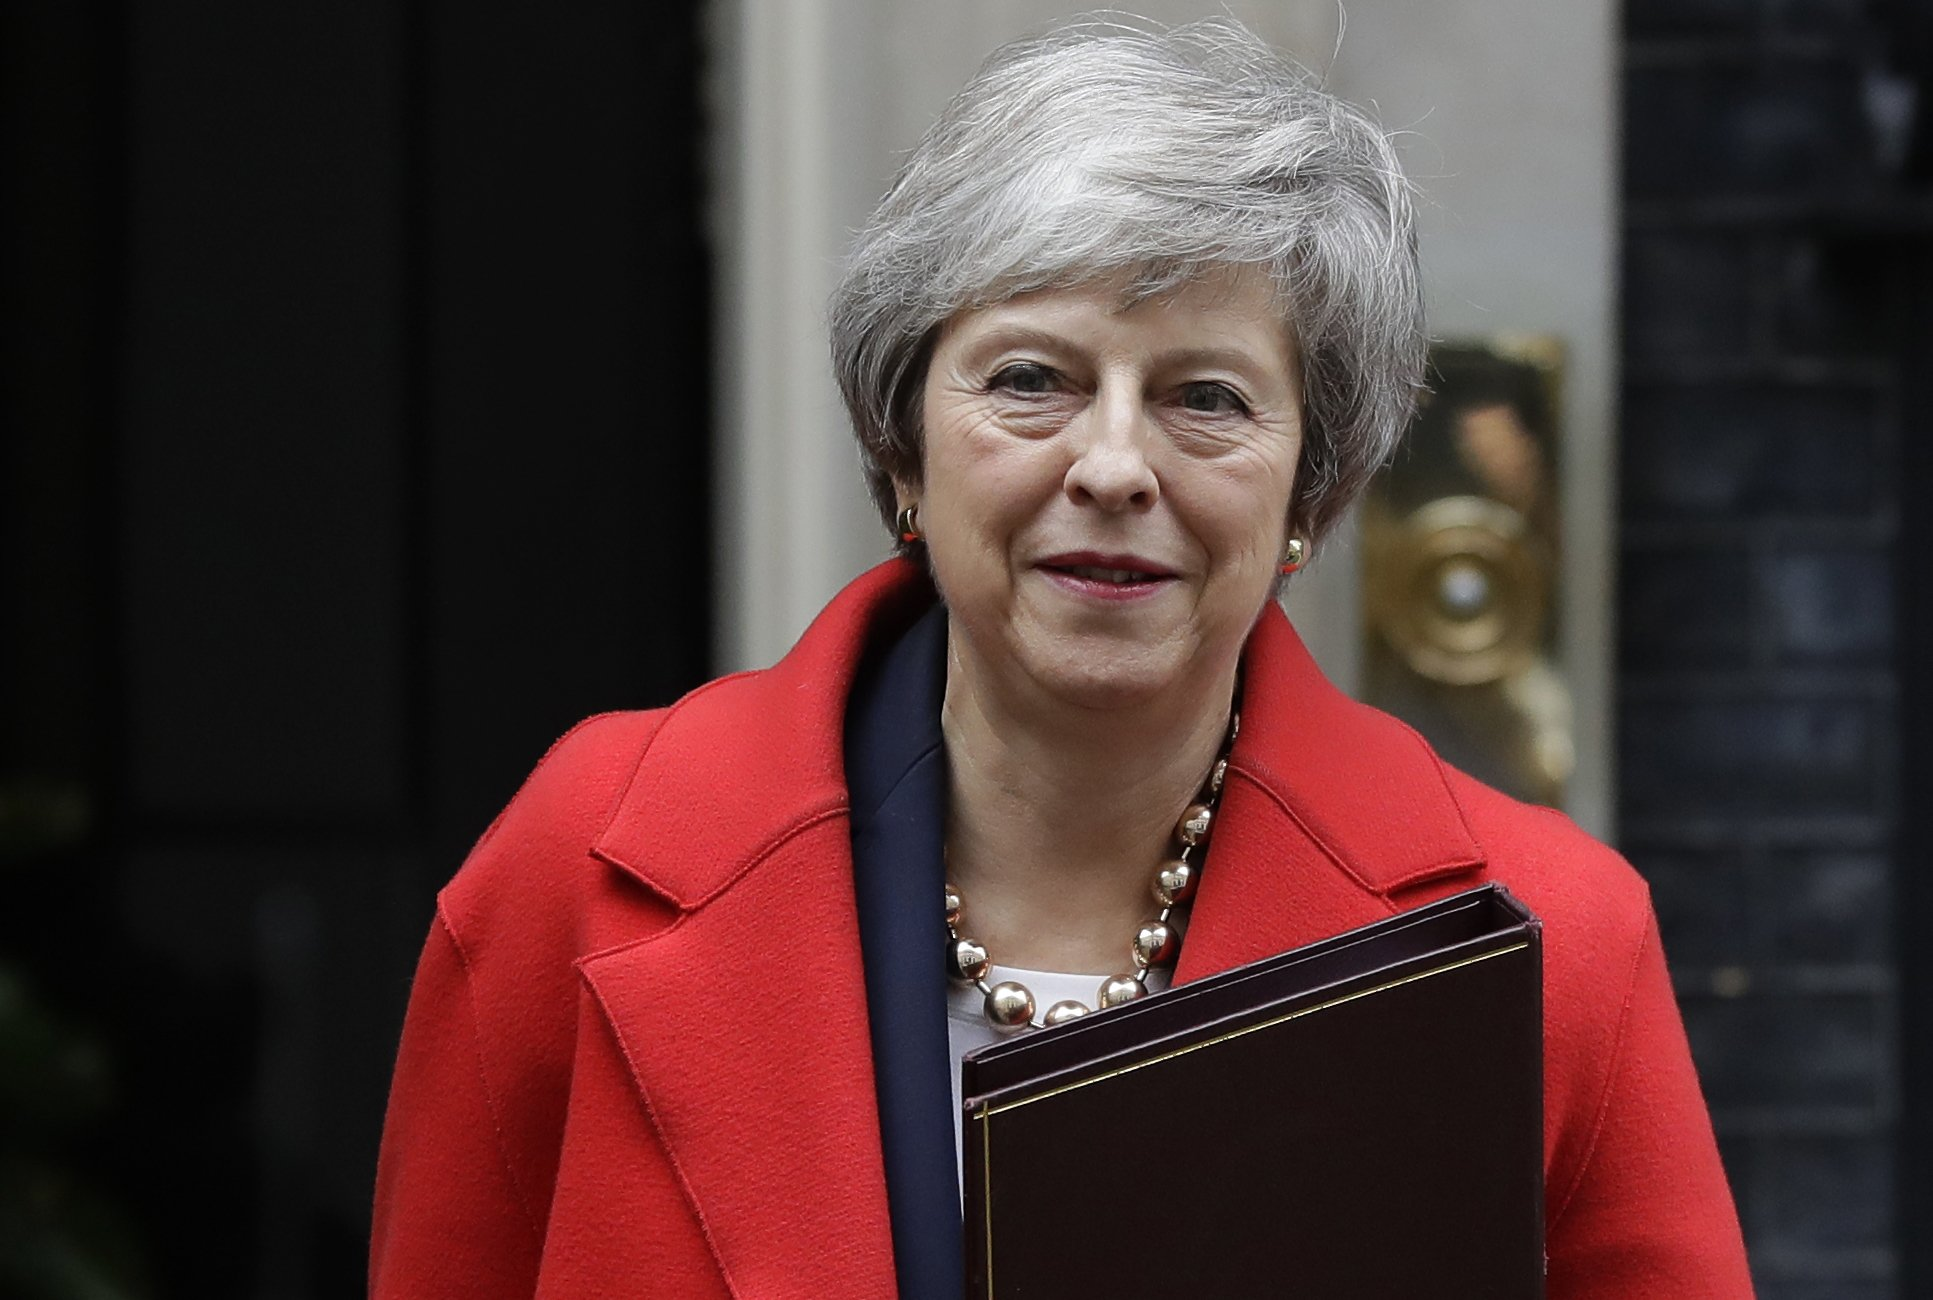 If Parliament rejects May's Brexit deal, uncertainty reigns